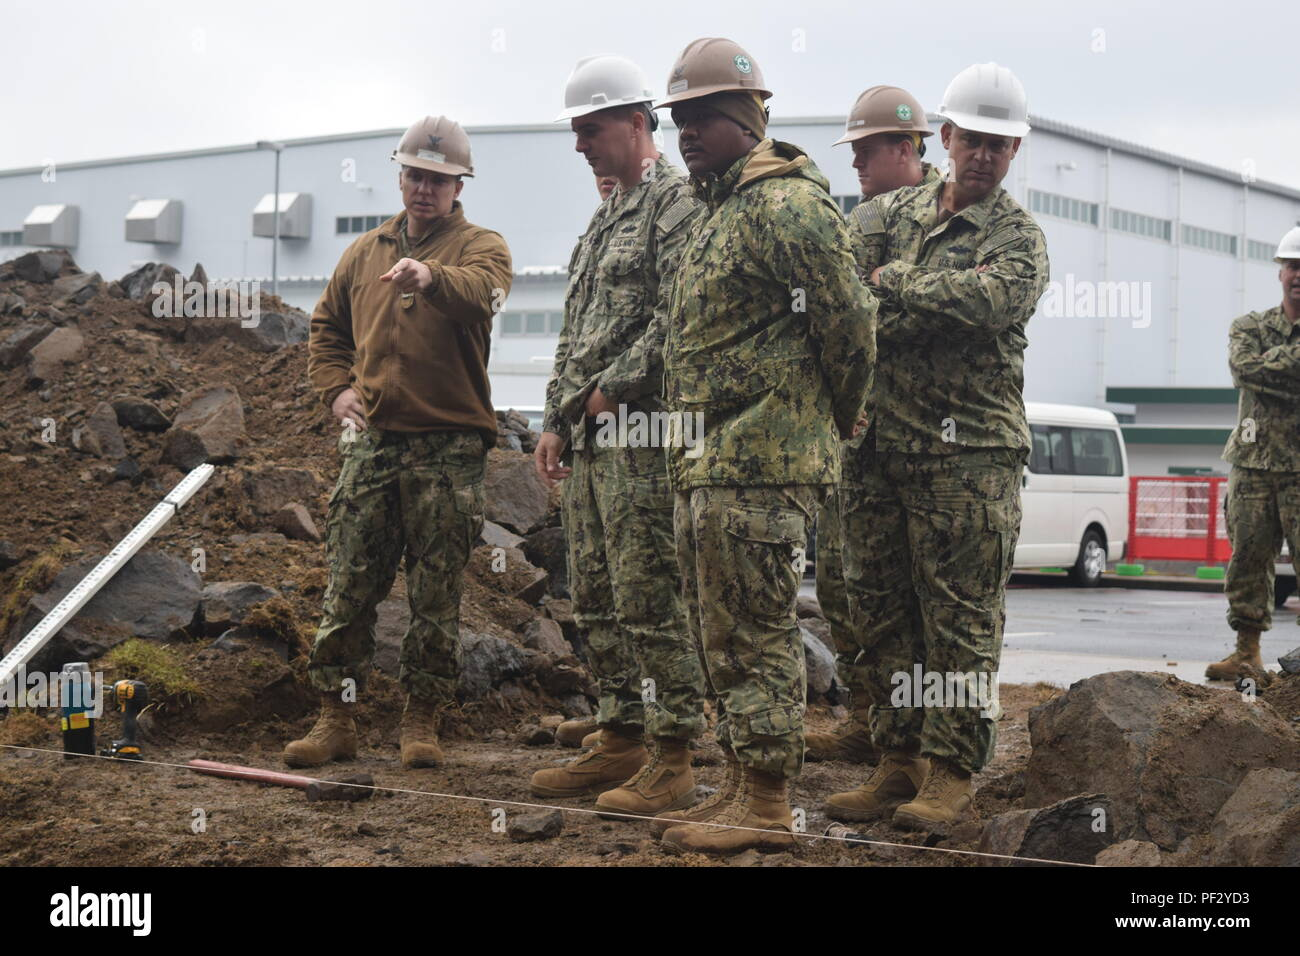 SASEBO, Japan (Dec. 6, 2017) Seabees from 30th Naval Construction Regiment visits Naval Mobile Construction Battalion (NMCB) 4 in Sasebo, Japan to check on the progress of the project and to inspect the Pre-Engineered Building (PEB). NMCB 4 is forward deployed to the pacific, ready to support major combat operations, humanitarian assistance/disaster relief operations, and provide general engineering support to Navy, Marine Corps, and joint operational forces.  (U.S. Navy photo by Builder 3rd Class Thomas Dykes/RELEASED) - Stock Image